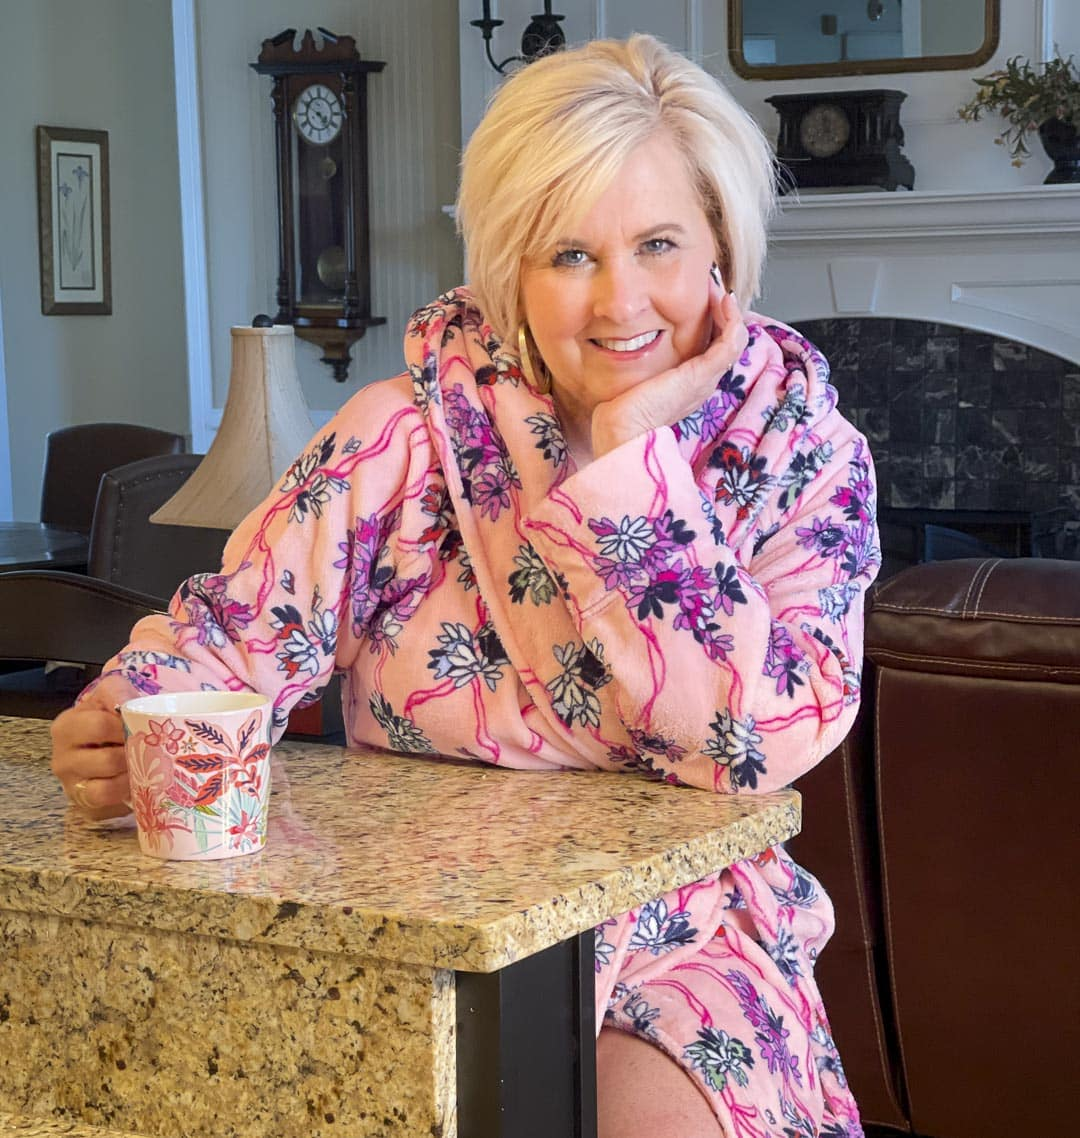 Over 40 fashion blogger, Tania Stephens is drinking a cup of coffee and staying warm on cold rainy mornings in a Hope Blooms Pink robe from Vera Bradley